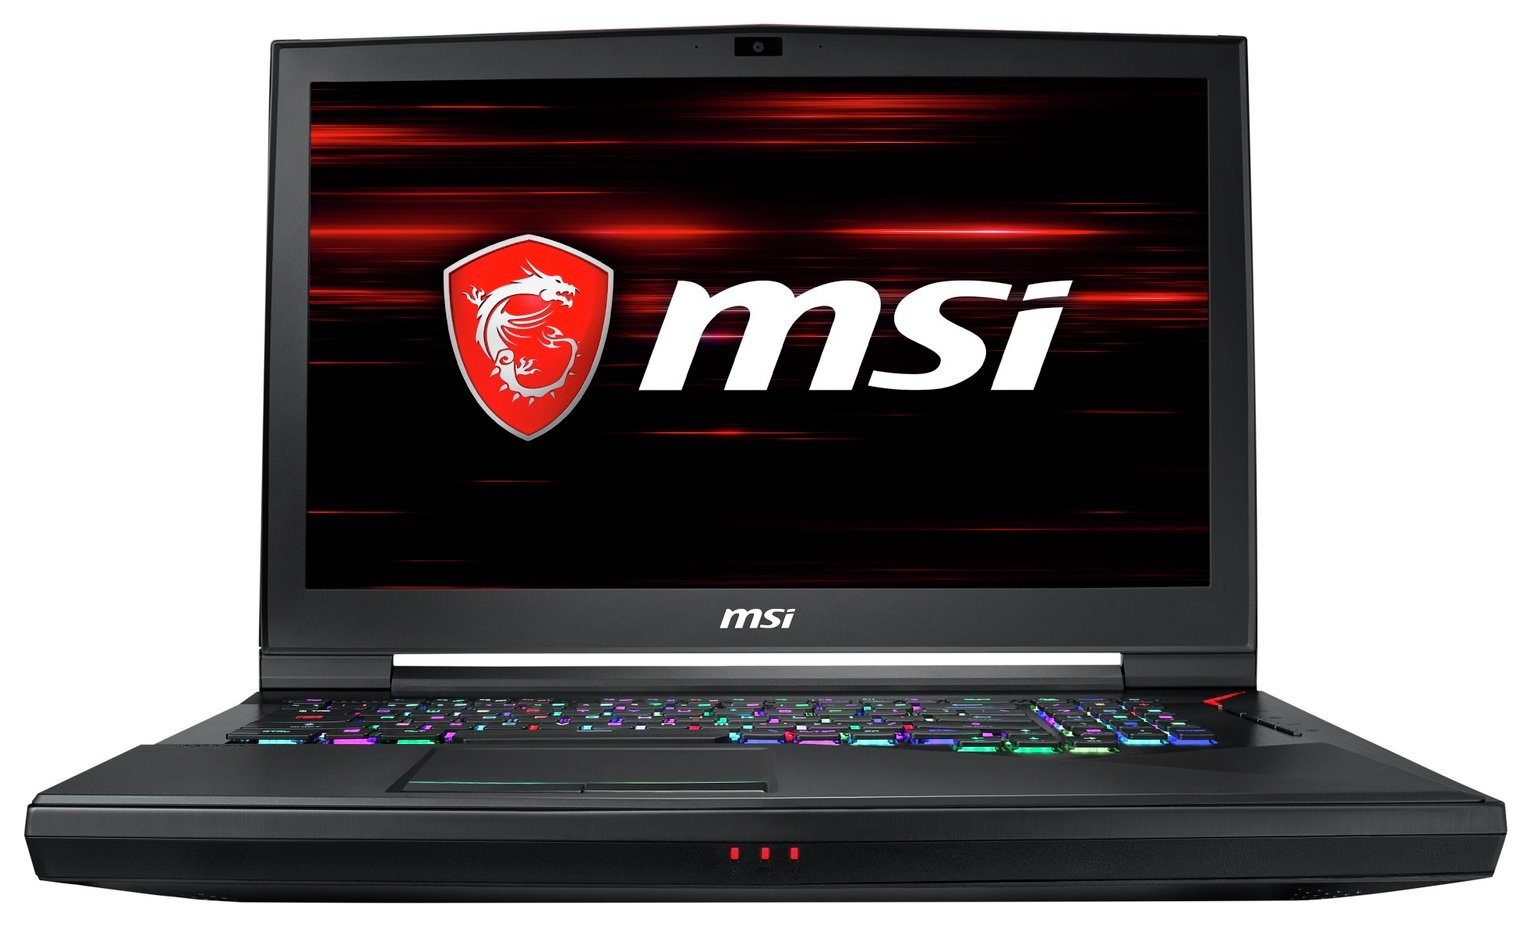 MSI GT75 Titan 17in i9 8GB 512GB 1TB RTX2080 Gaming Laptop